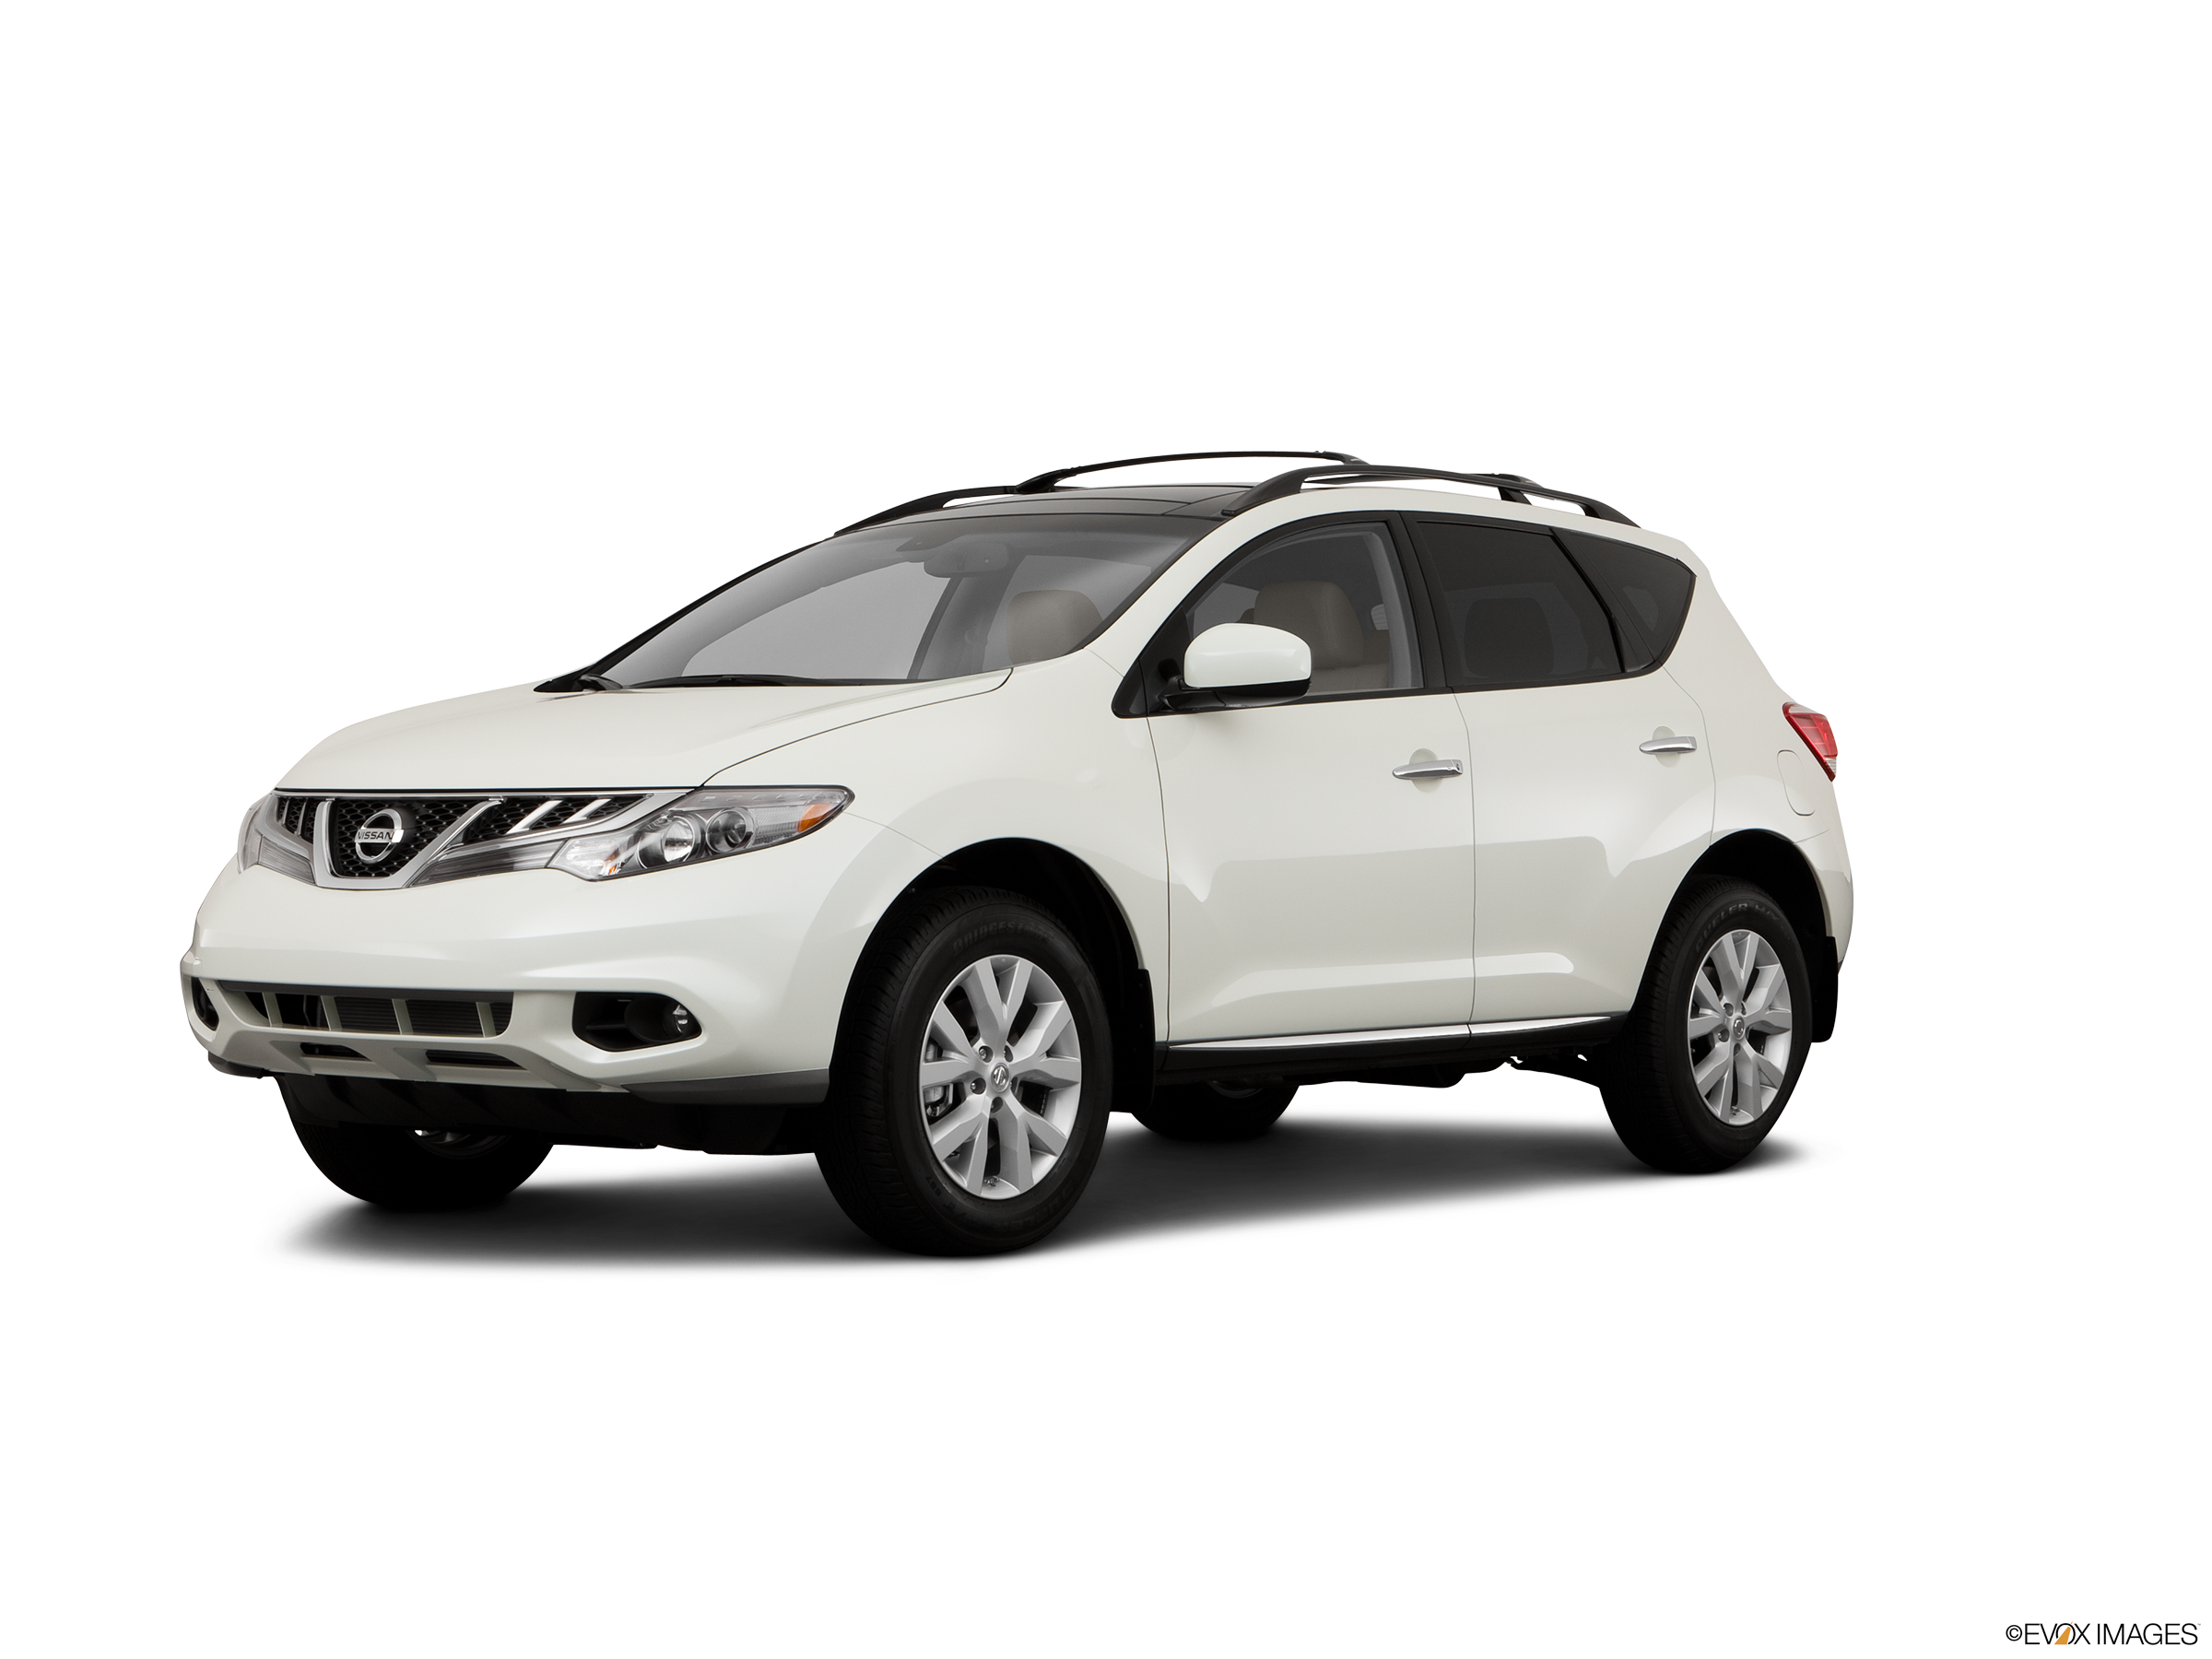 2011 Nissan Murano Values Cars For Sale Kelley Blue Book